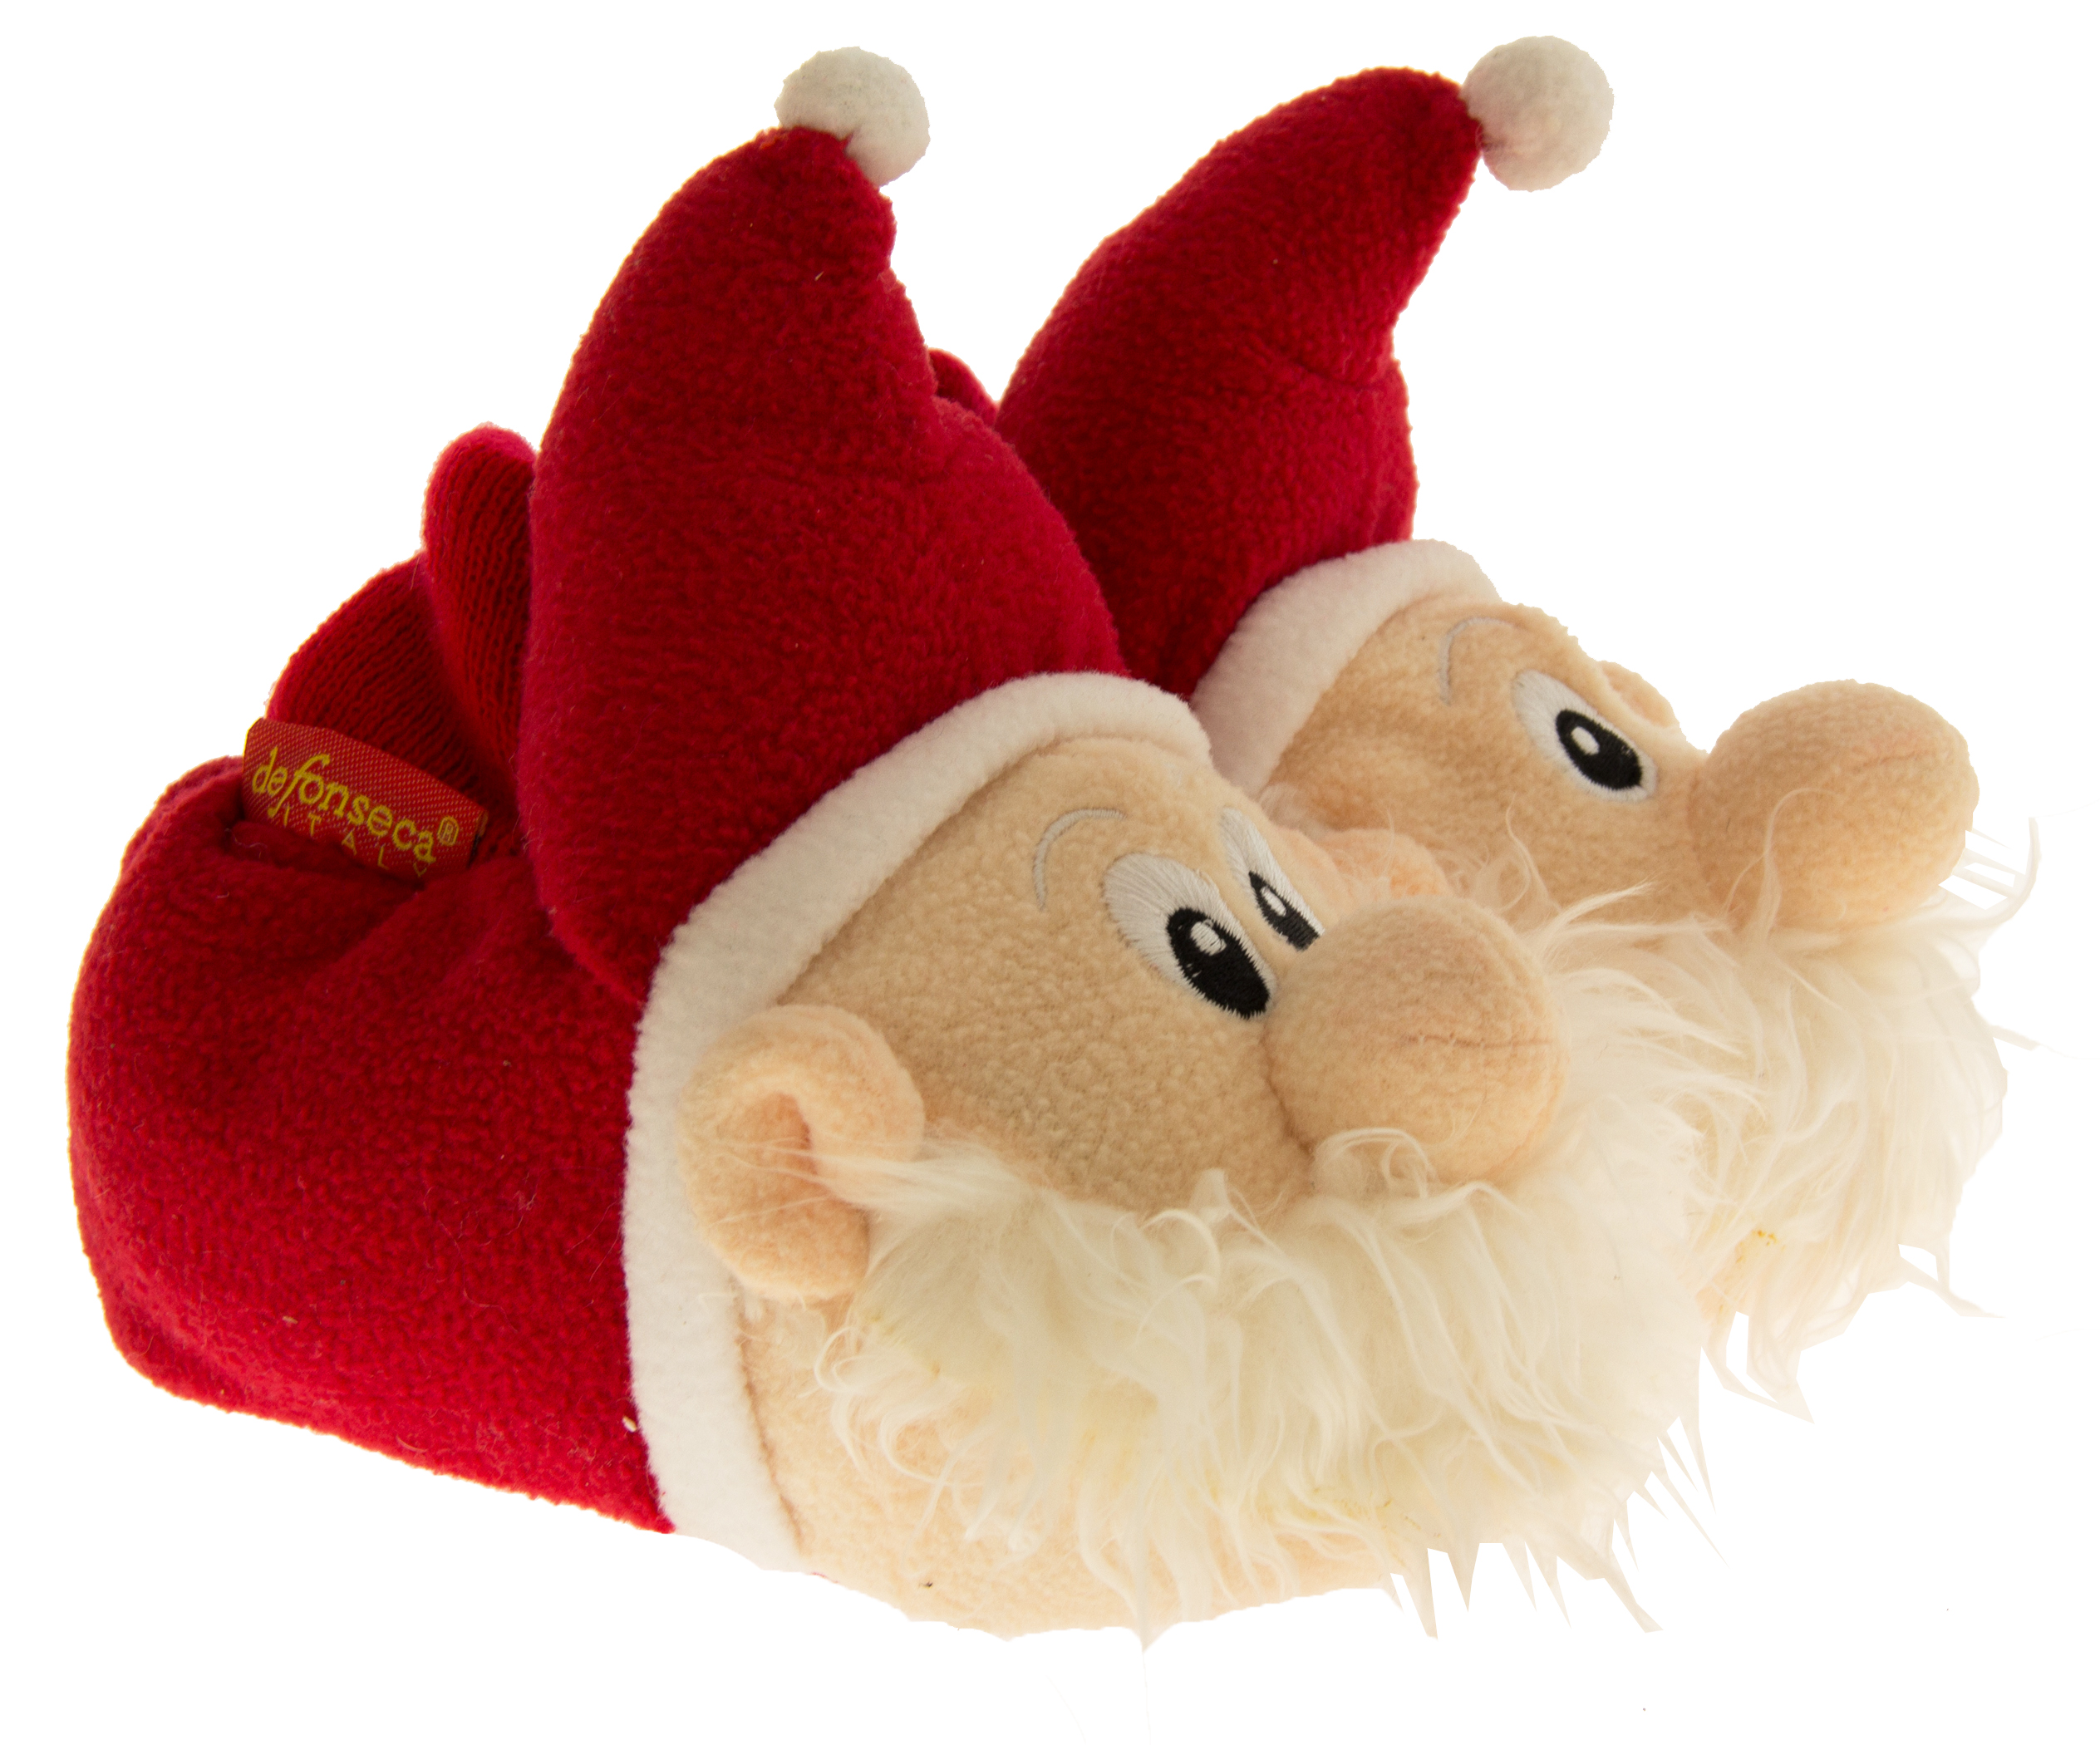 Walmart Christmas Slippers | Division of Global Affairs